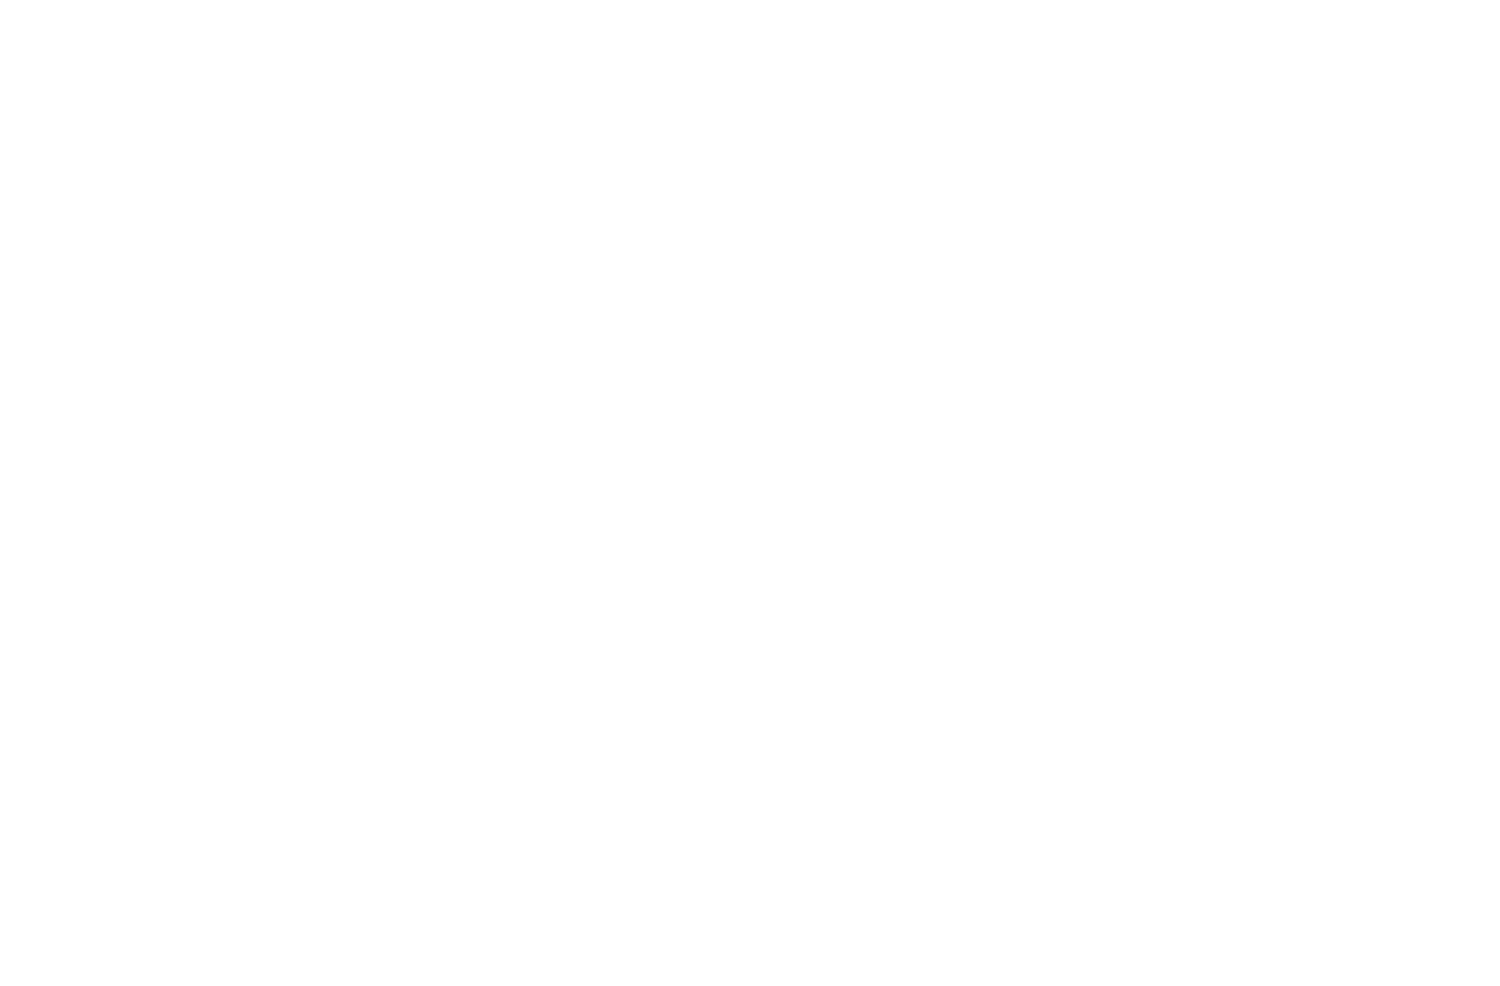 WILL BRENNAN DESIGNS